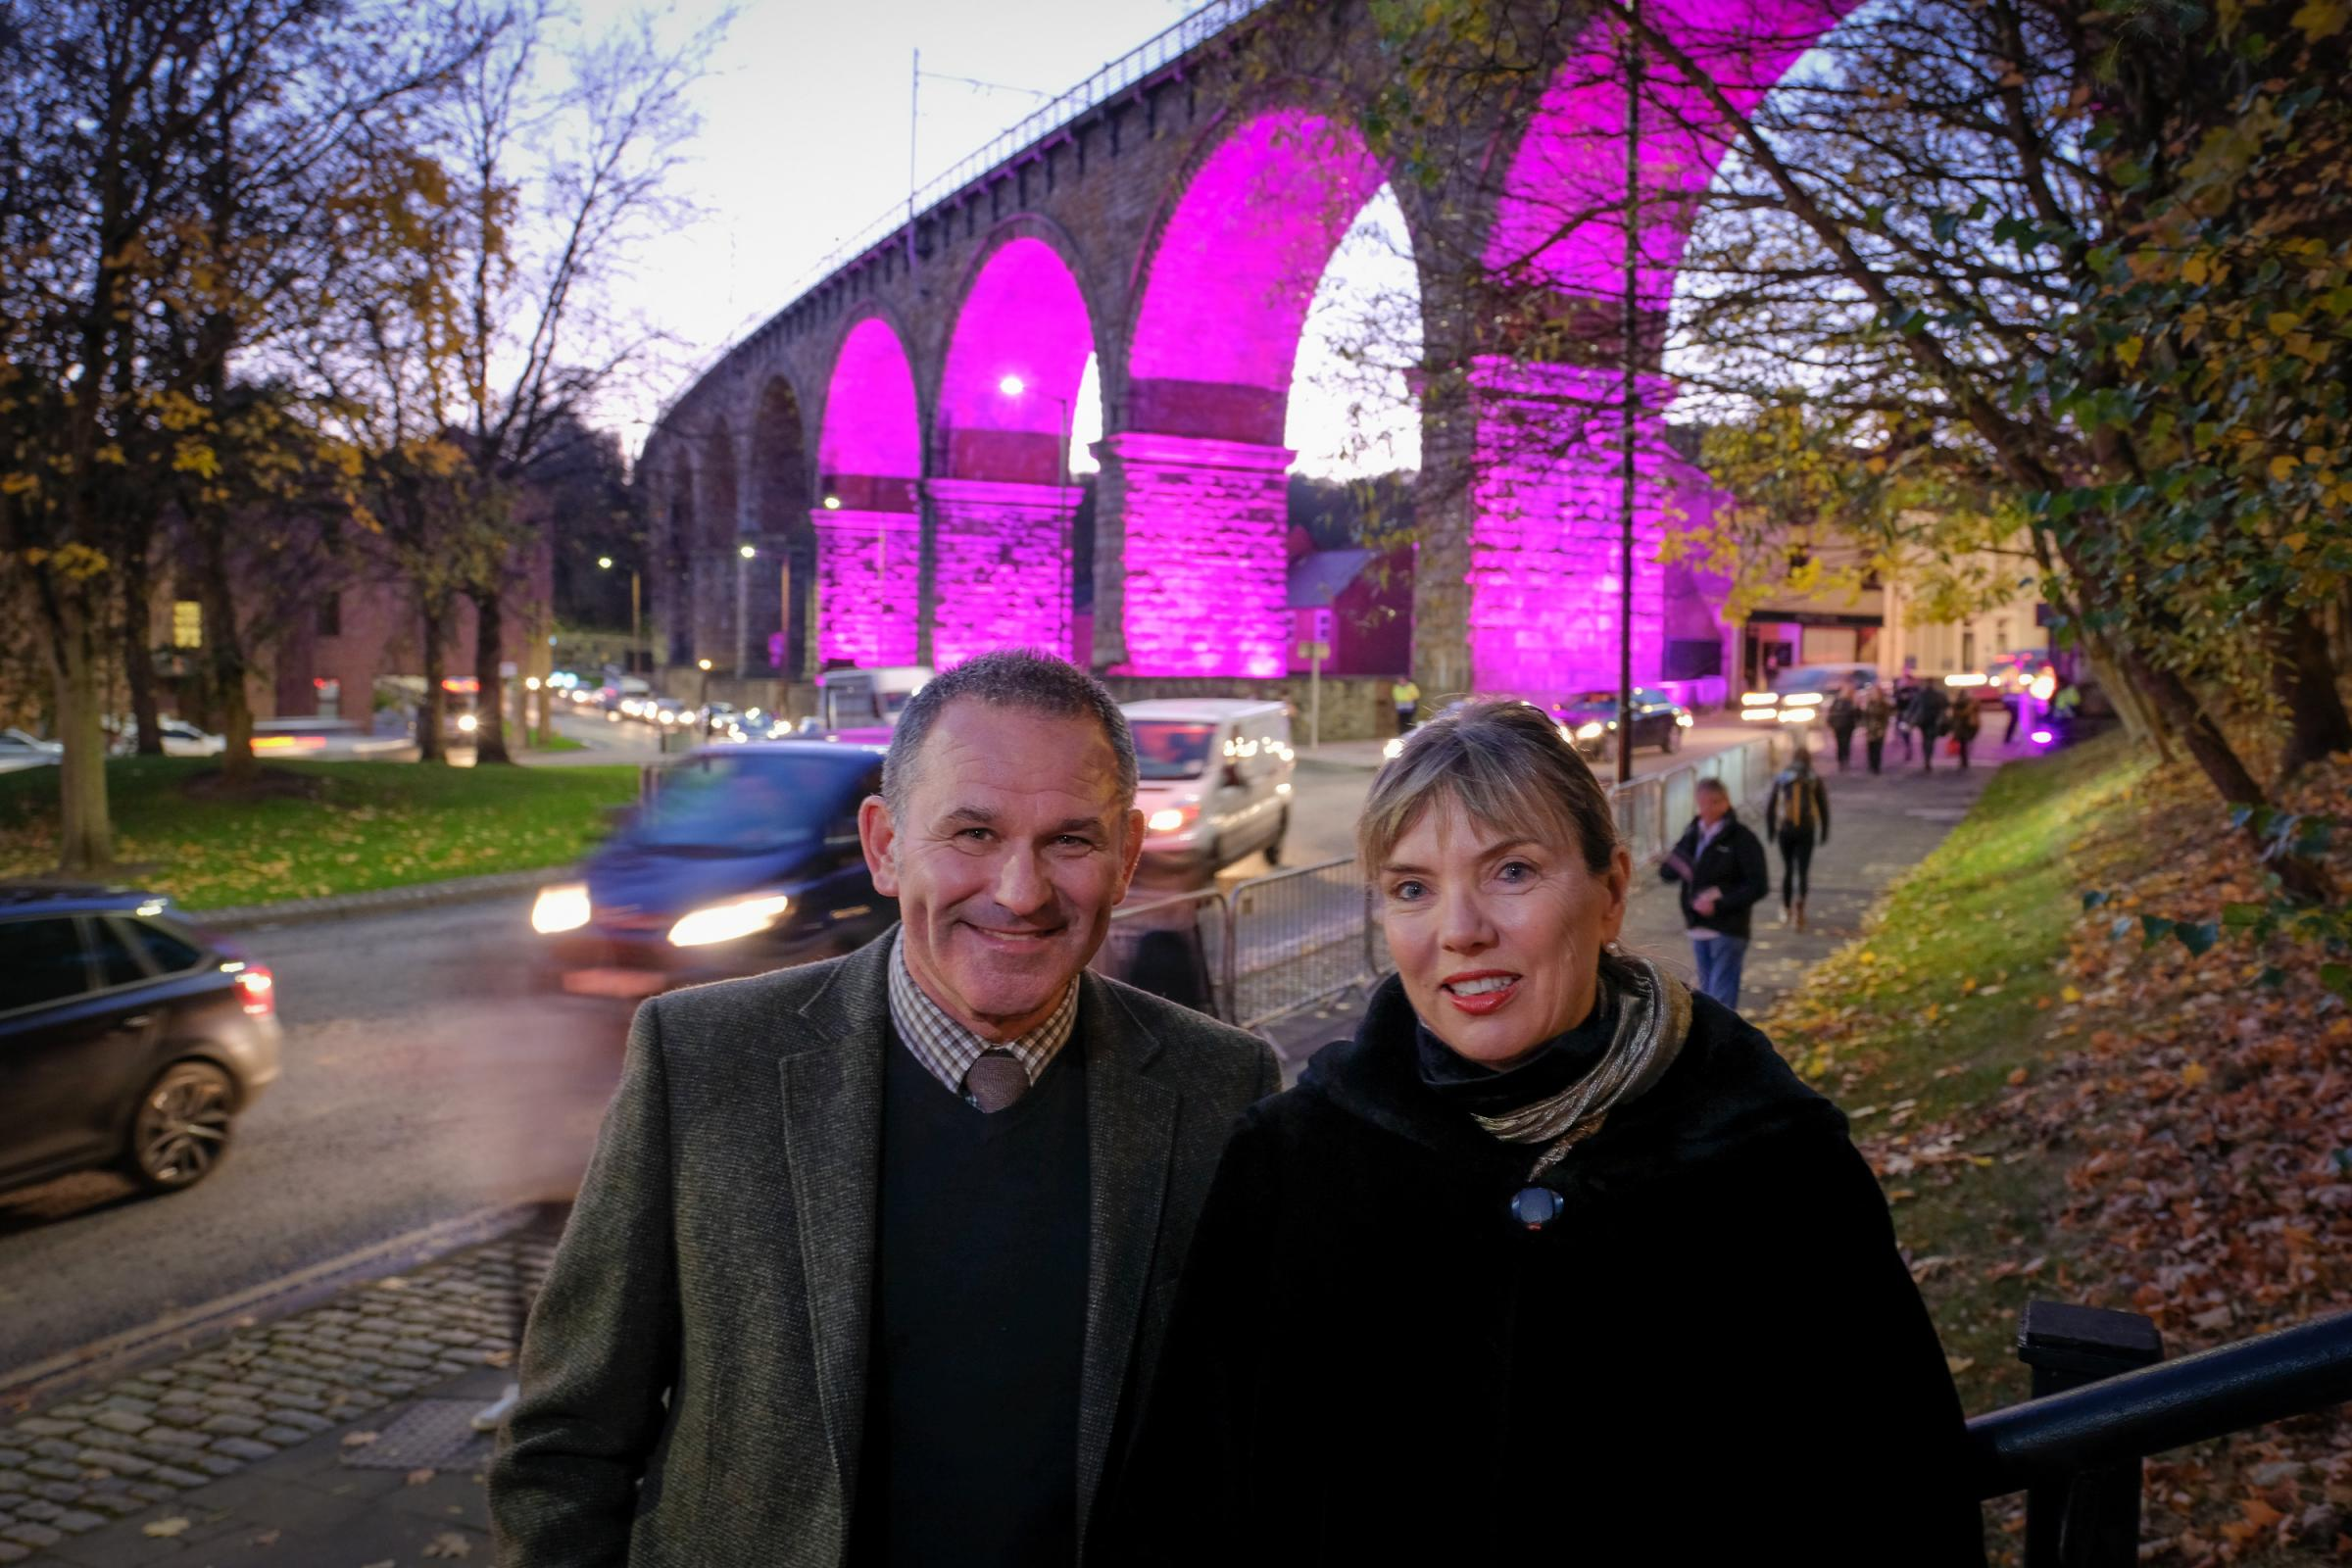 Allan Cook (left) and Sarah Coop (right) in front of the Railway Arches during Lumiere 2017, which will be home to a permanent legacy installation Picture: KEITH TAYLOR